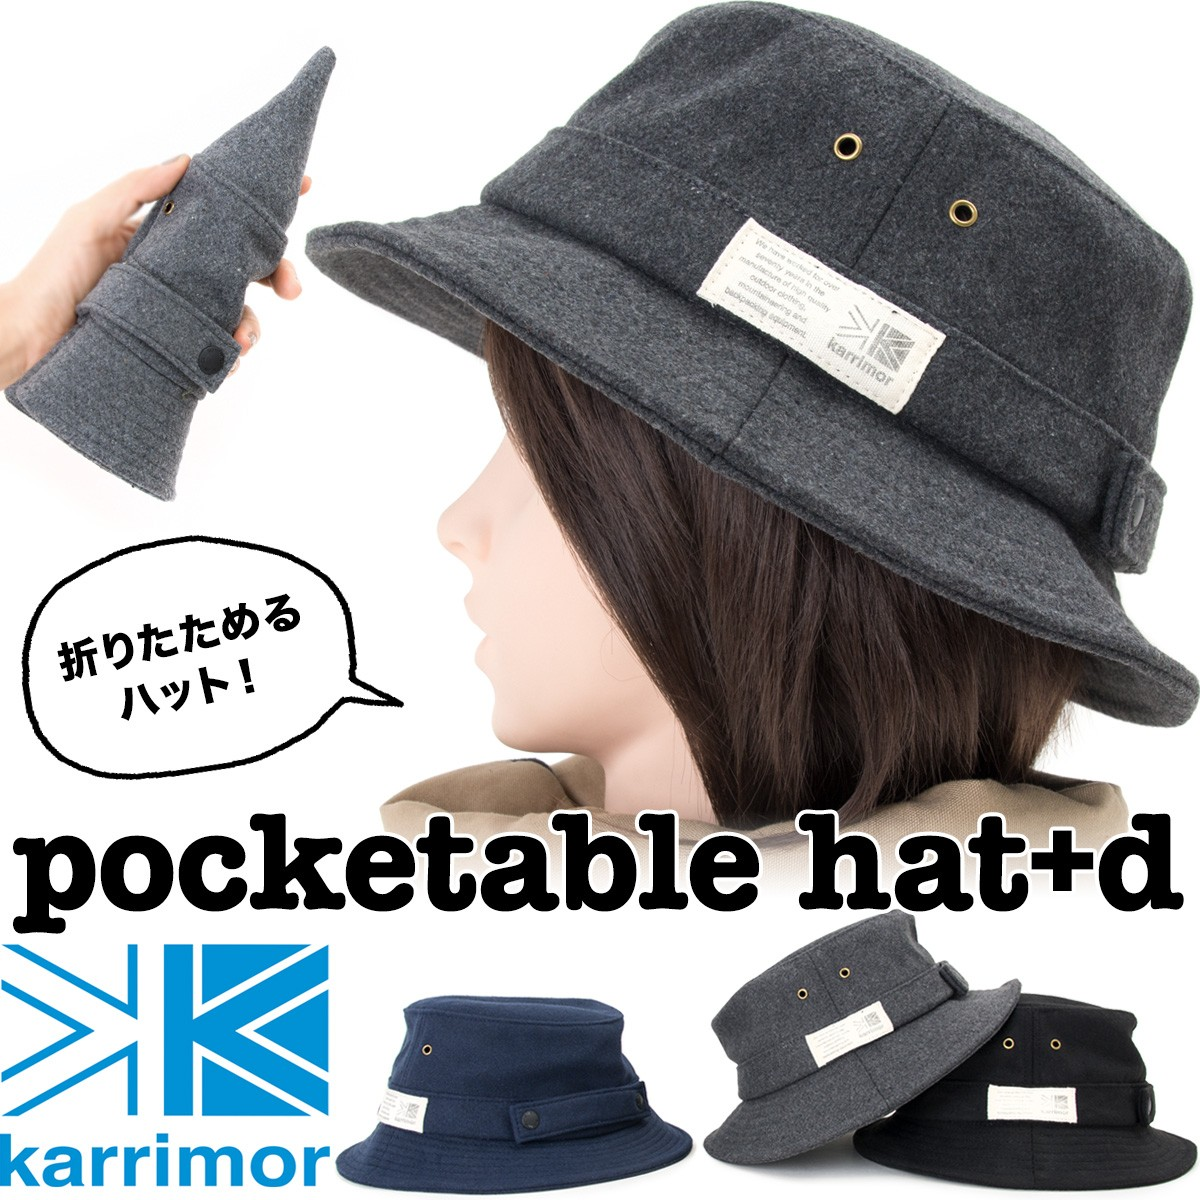 karrimor pocketable hat + d